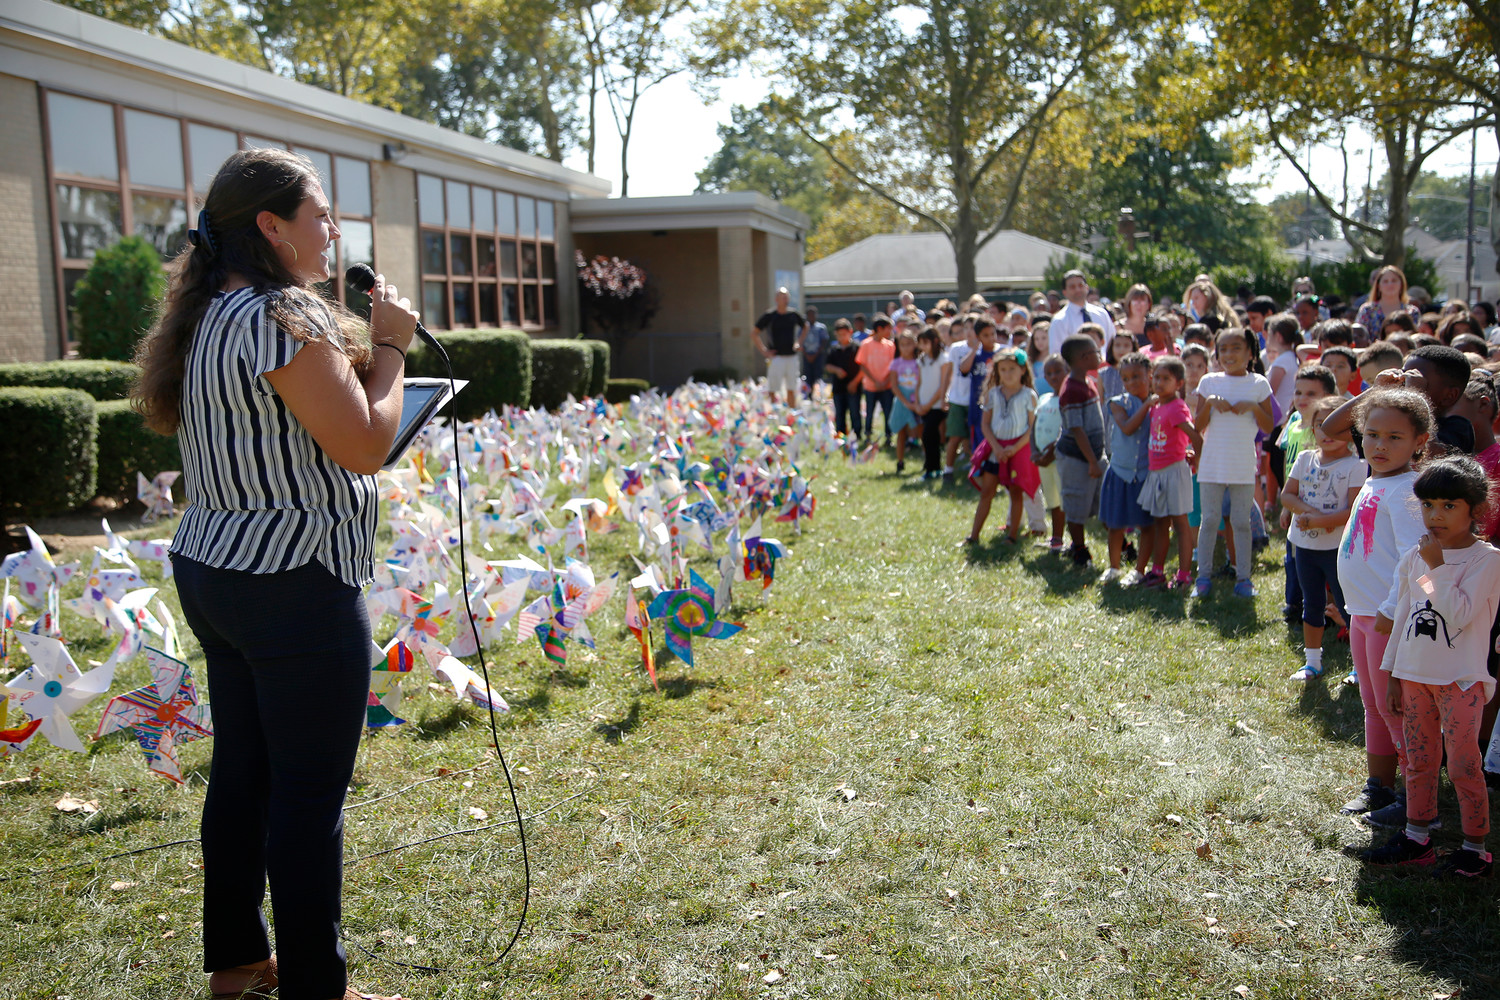 Art teacher and organizer of the event, Nicole Barci, thanked the children for the pinwheels they made on Sept. 25.